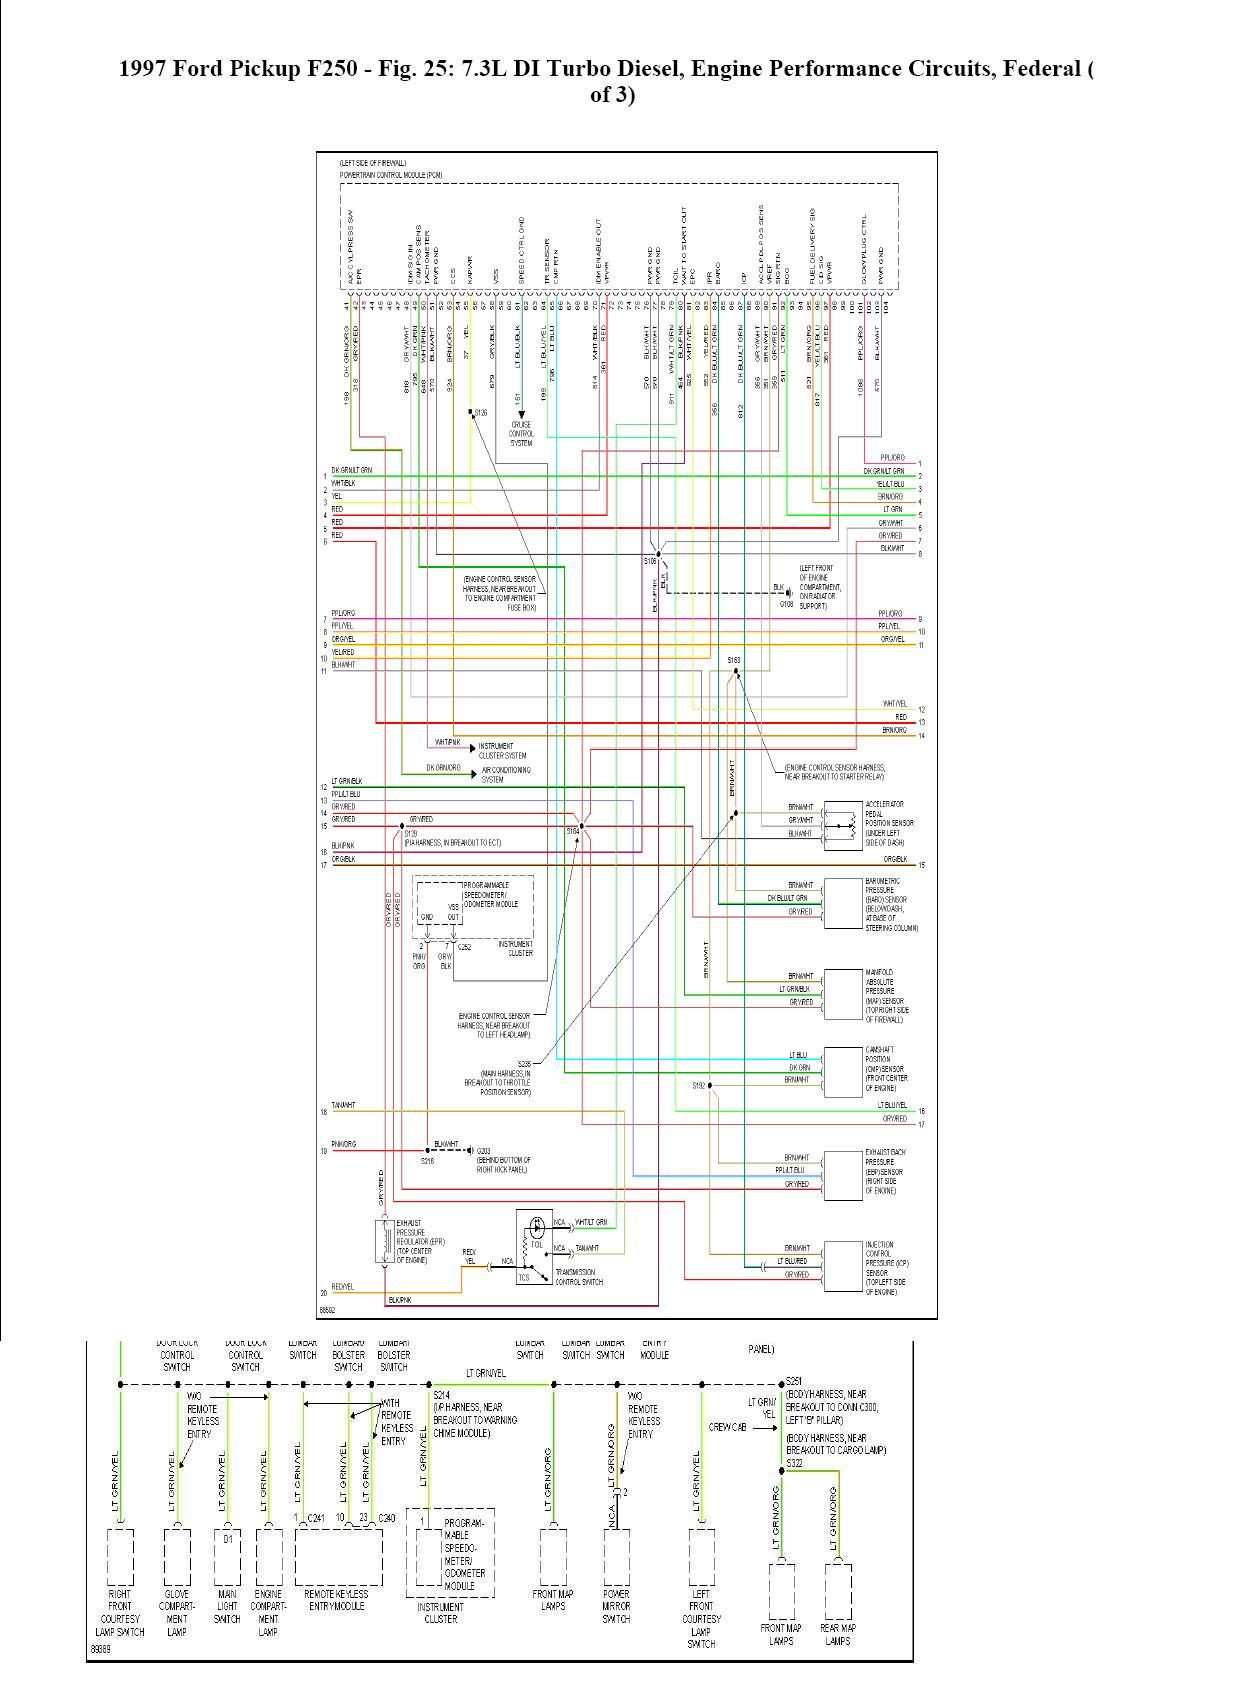 1997 f350 wiring diagram wiring diagram dat 1997 ford f250 trailer wiring diagram 1997 ford f350 trailer wiring diagram [ 1243 x 1690 Pixel ]